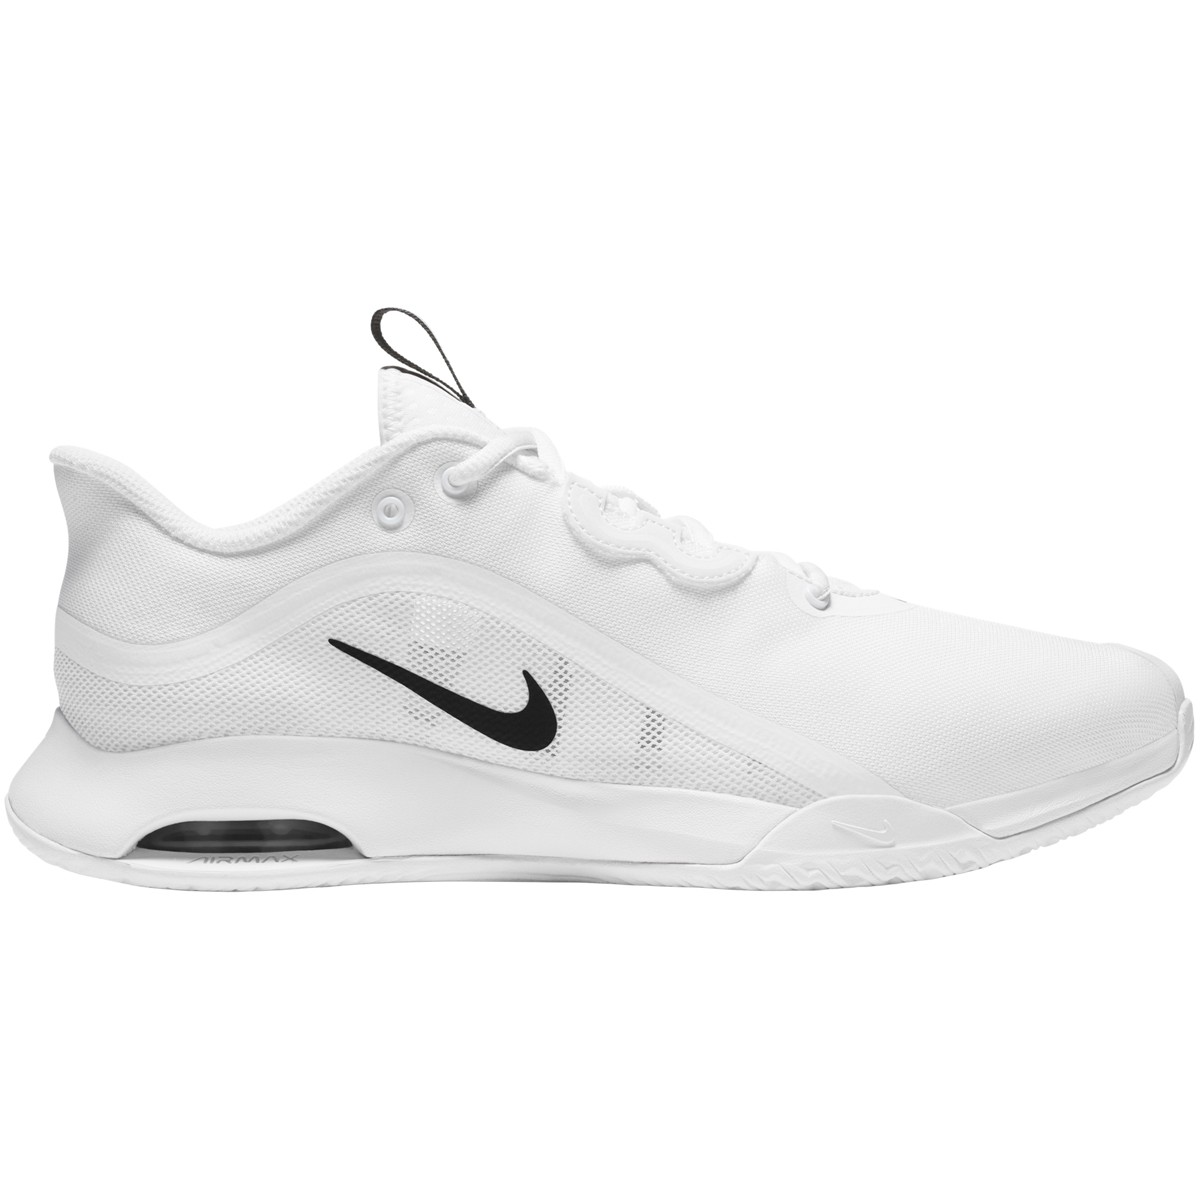 CHAUSSURES NIKE AIR MAX VOLLEY TOUTES SURFACES - NIKE - Homme ...